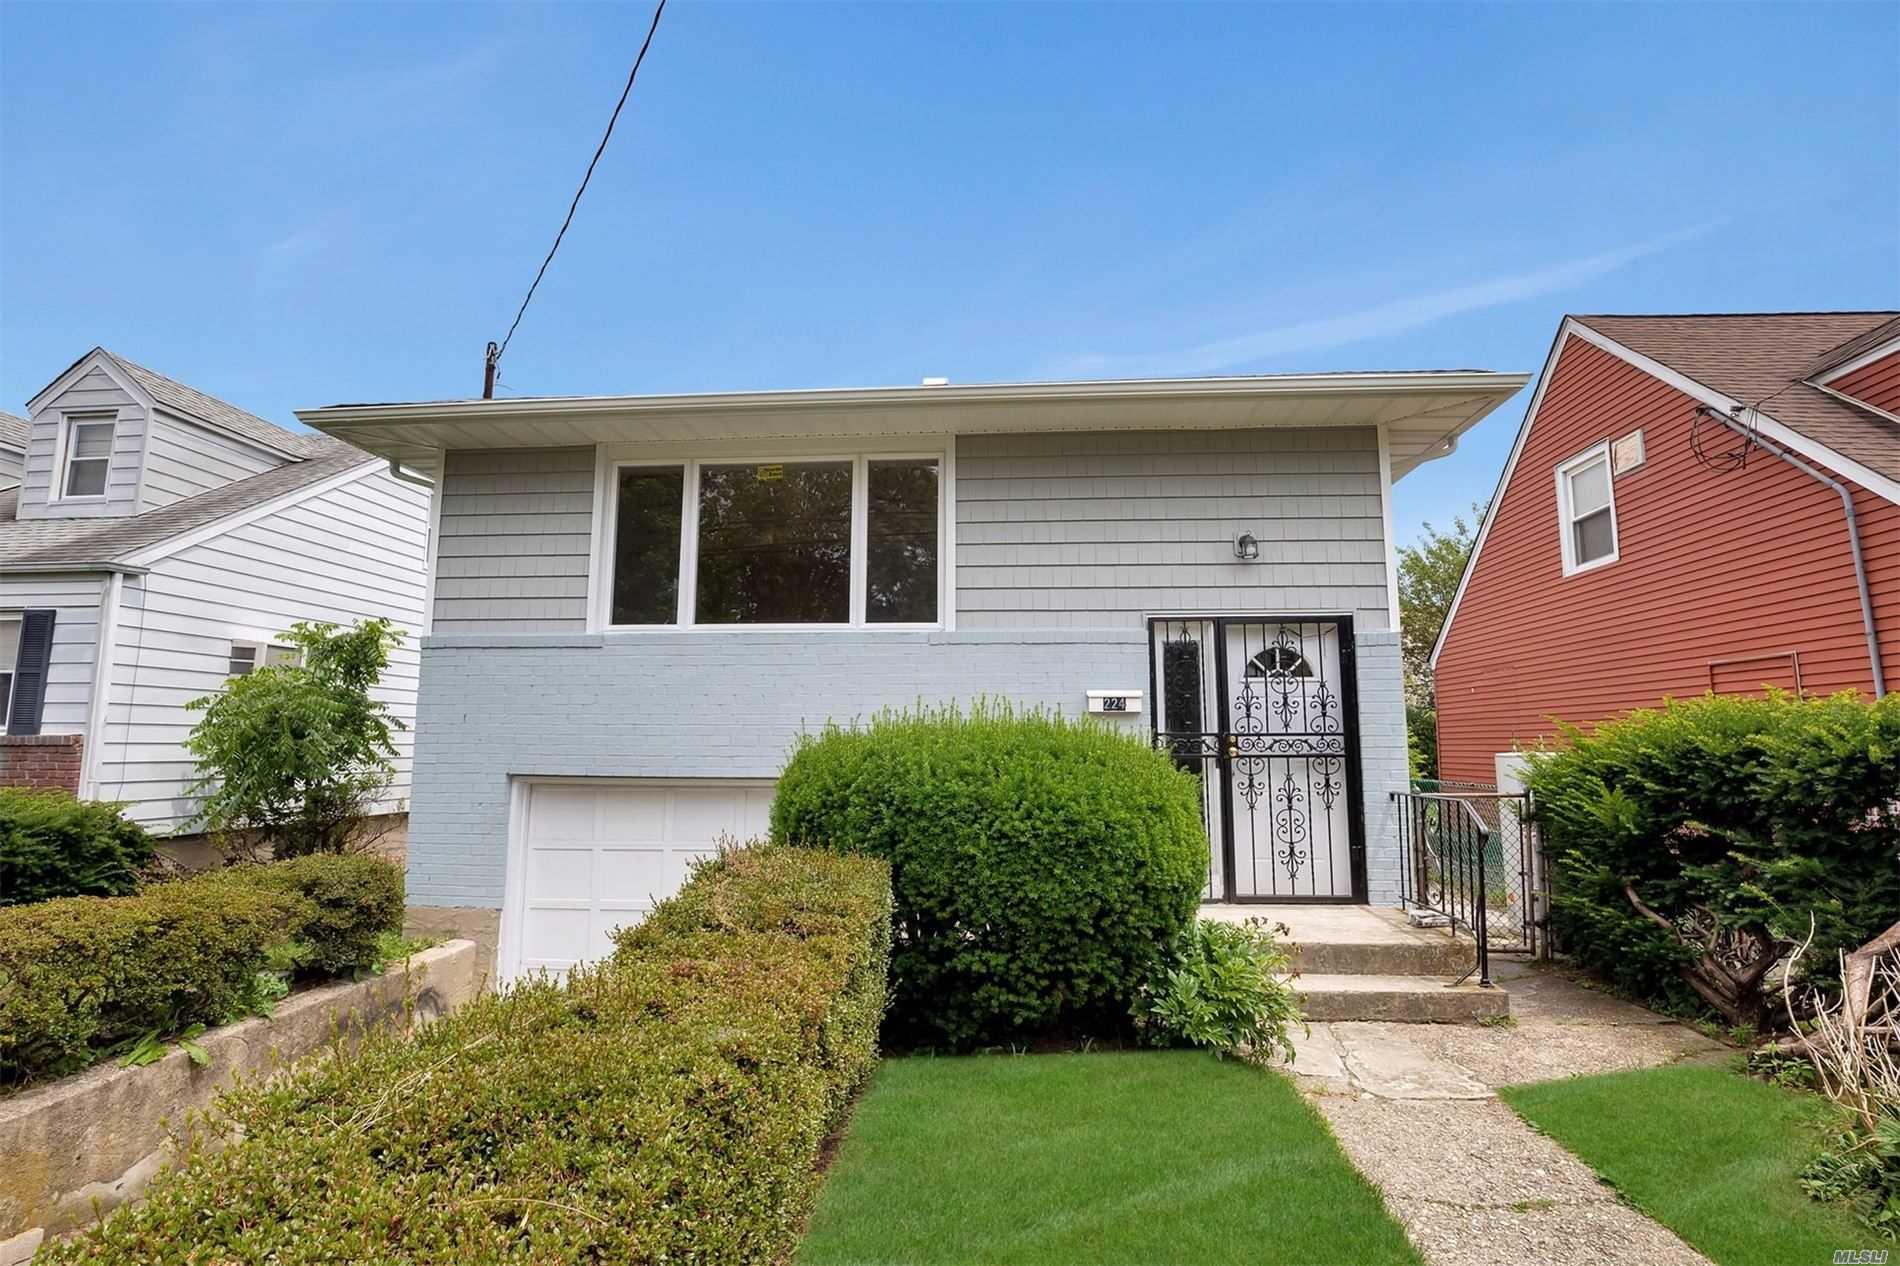 224 Holly Ave - Hempstead, New York